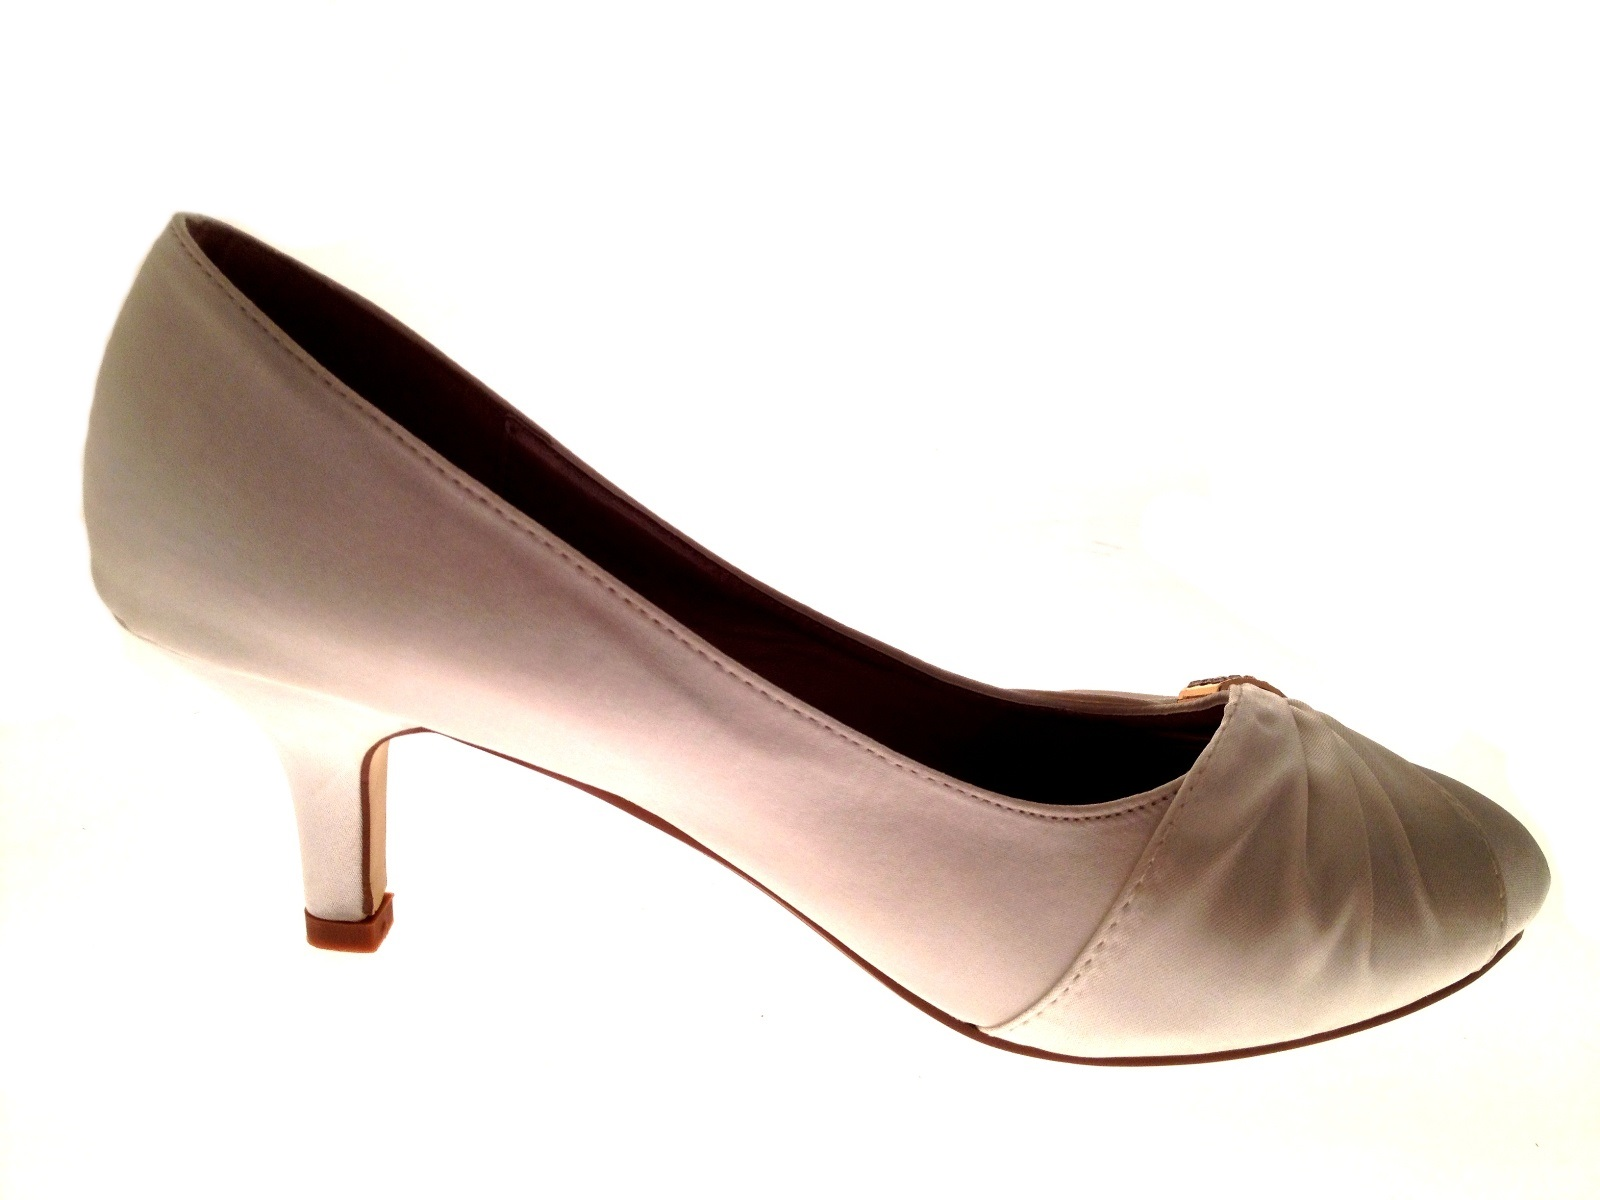 Womens-Low-Heel-Satin-Diamante-Wedding-Heels-Bridal-